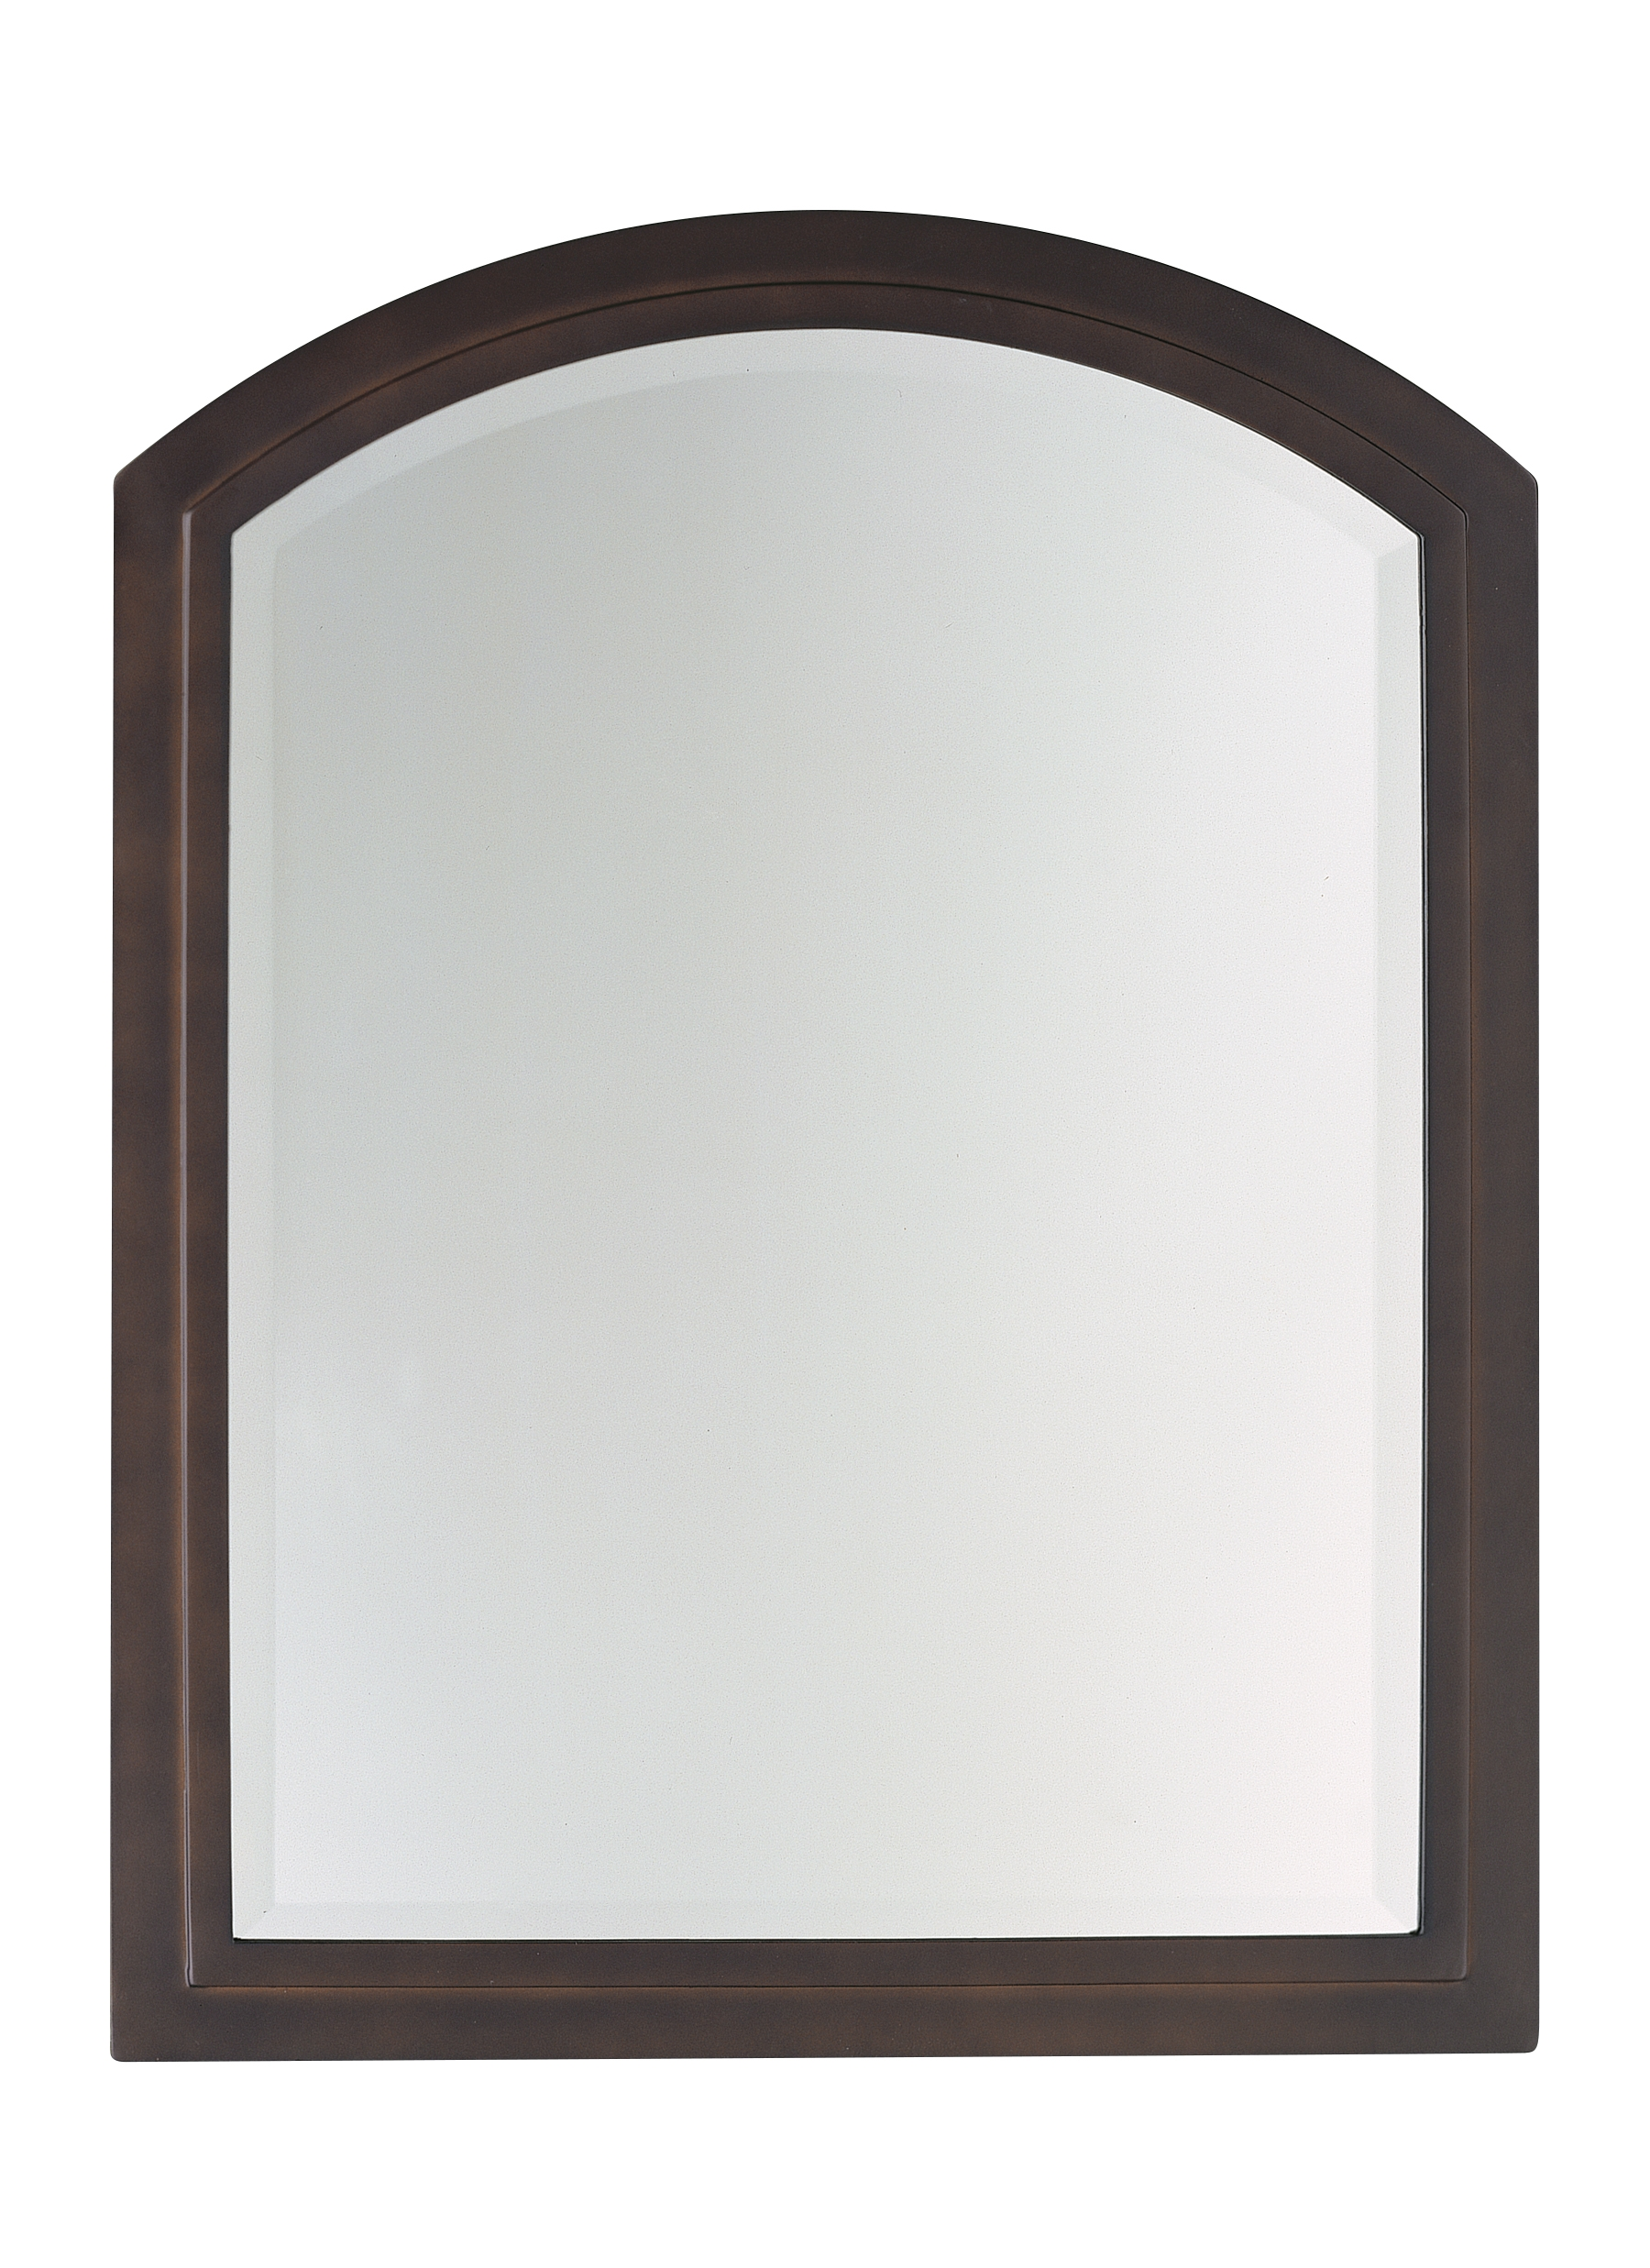 Oil Rubbed Bronze Wall Mirror Wall Shelves Within Bronze Wall Mirrors (Image 4 of 15)